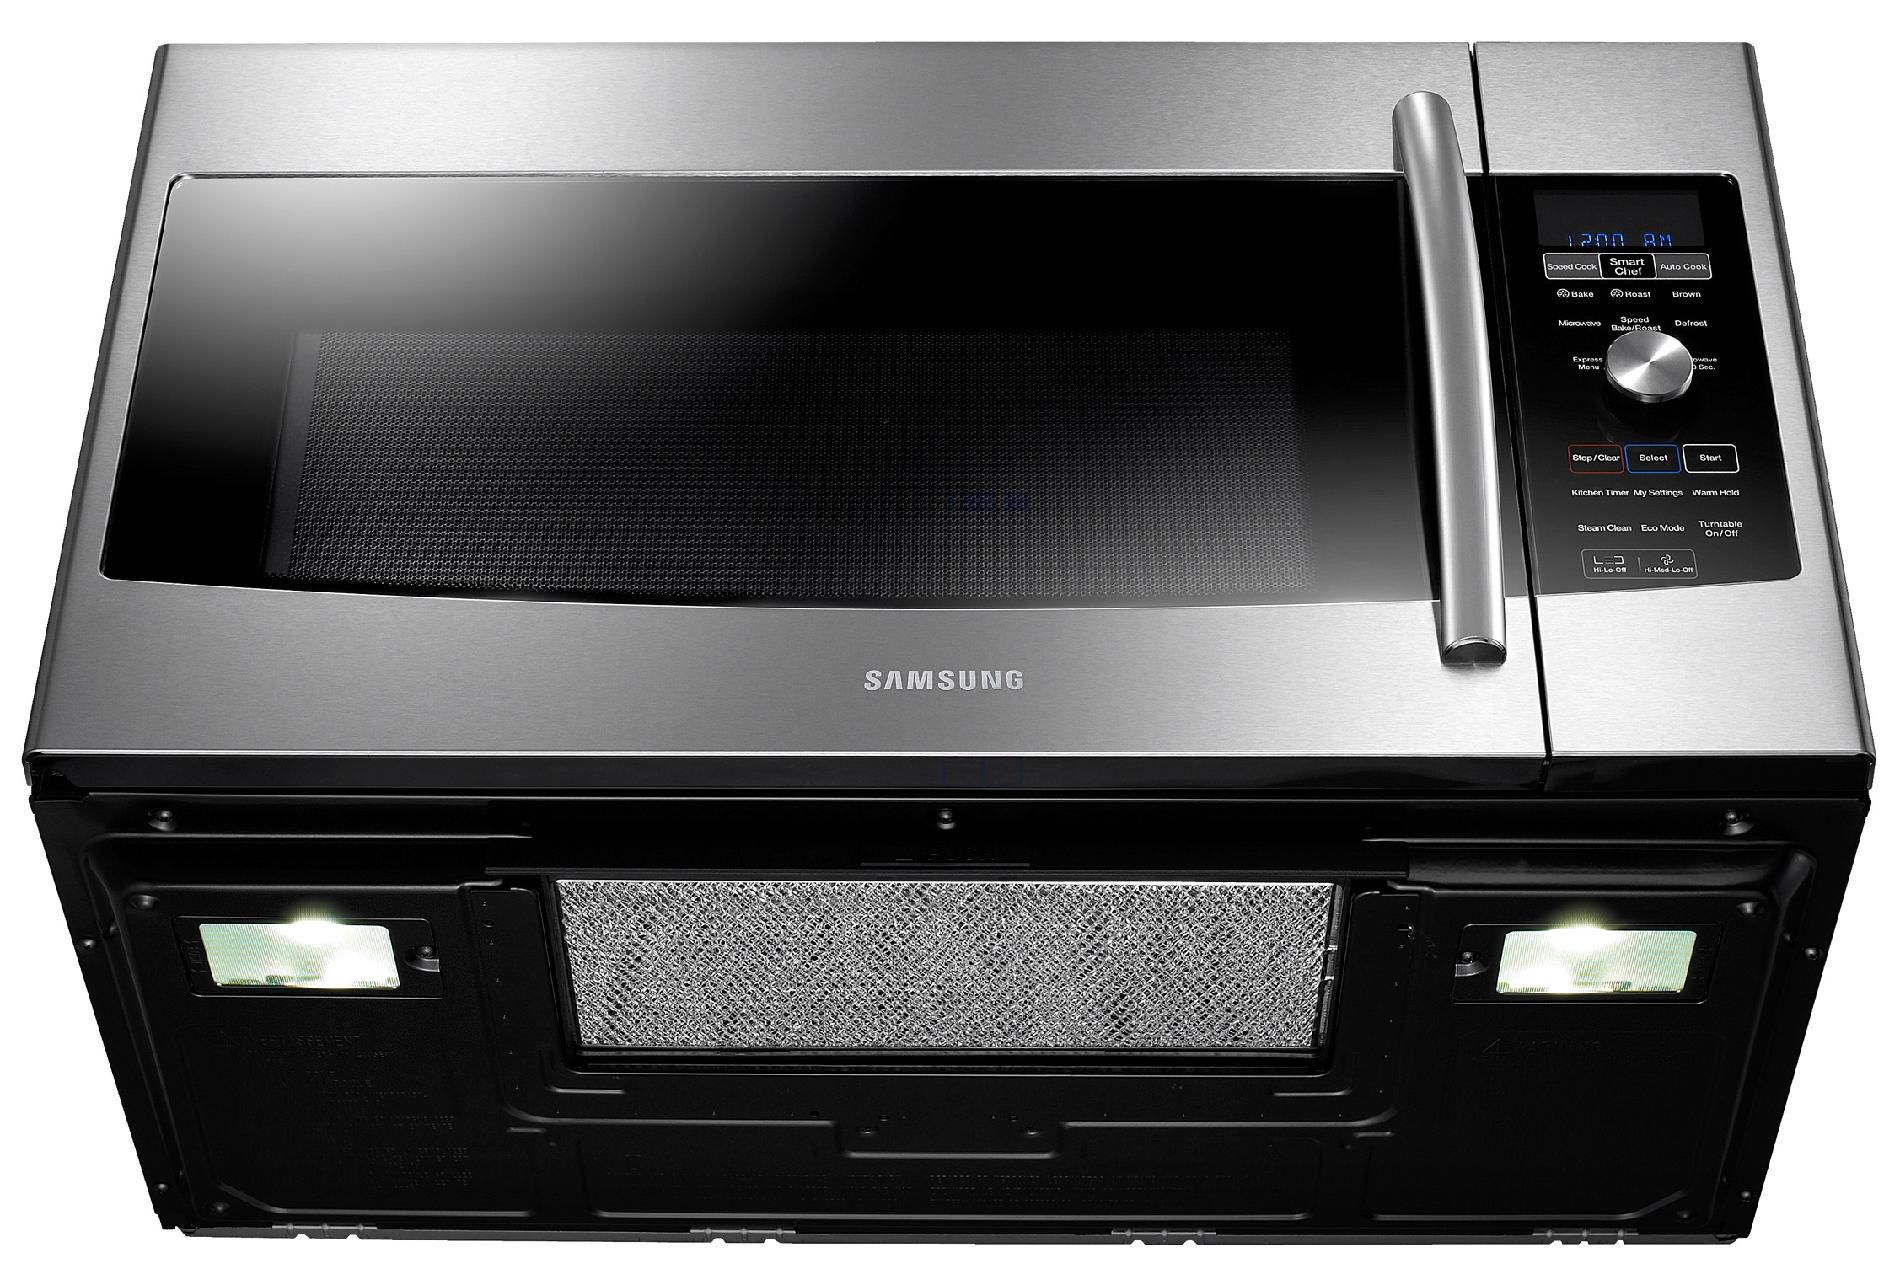 Samsung 1.7 cu. ft. Over-the-Range Speed Microwave Oven w/Convection - Stainless Steel